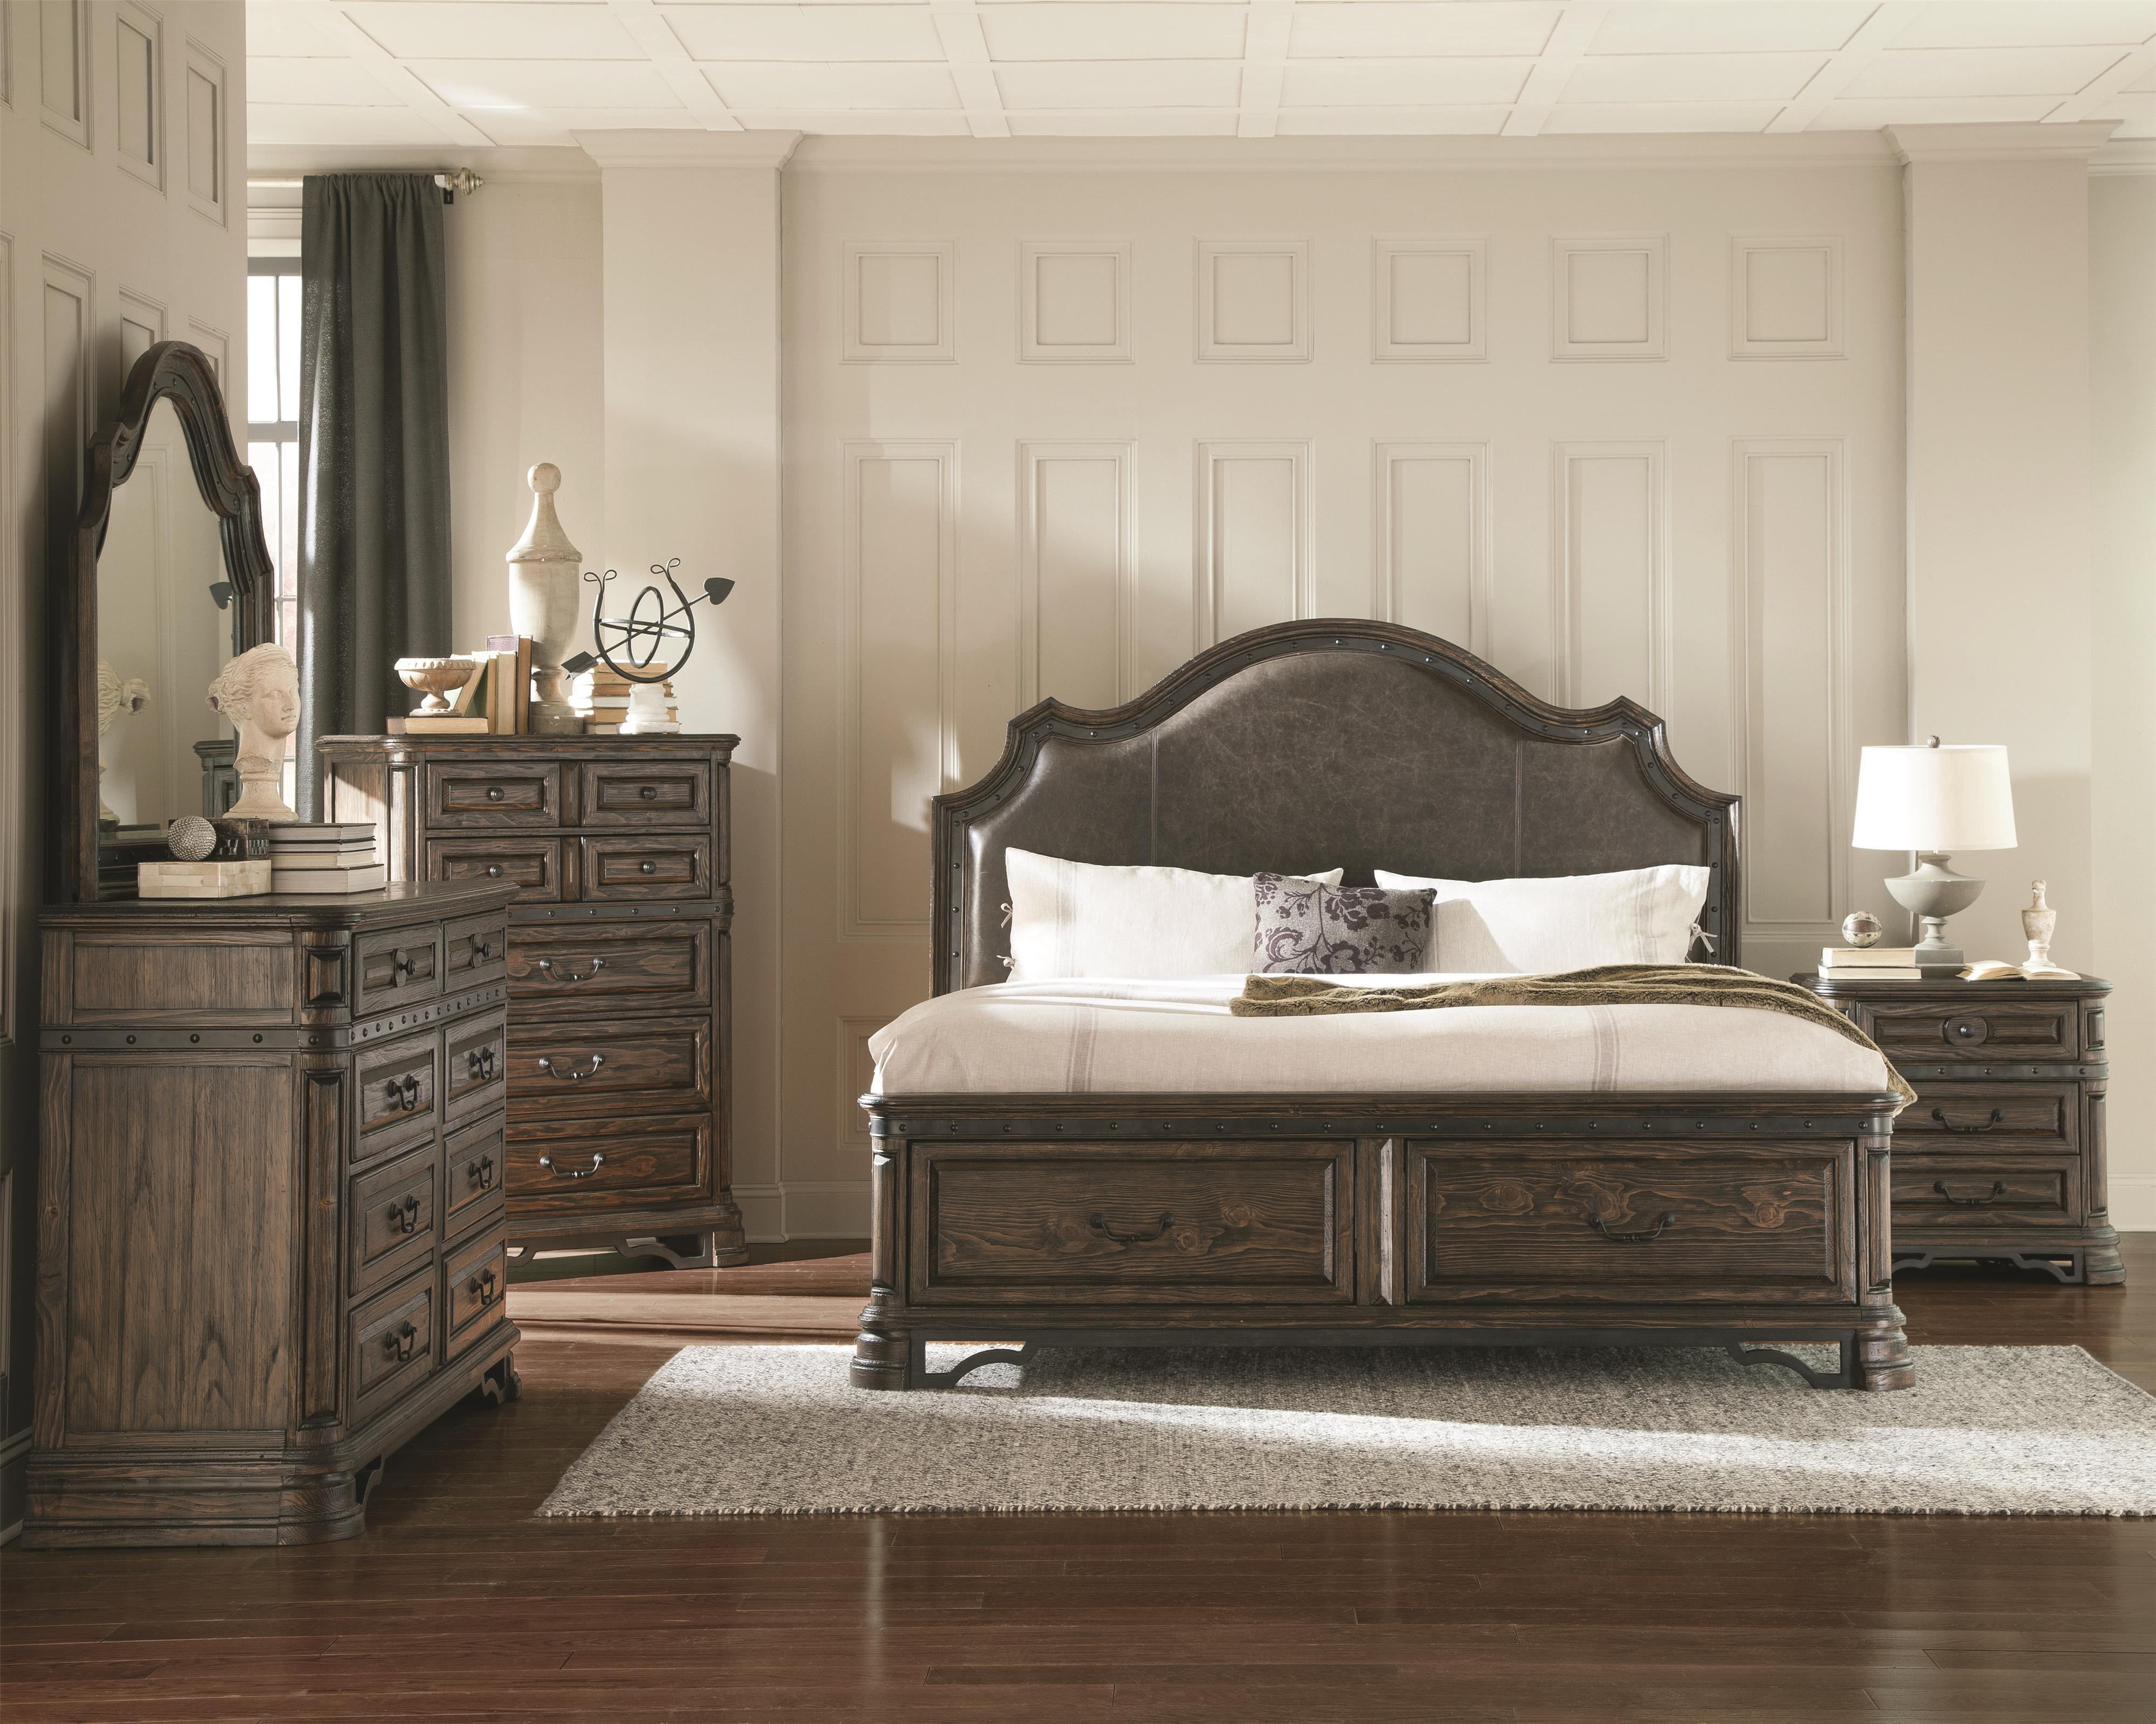 Carlisle Flotation Bed Flotation Beds And Mattresses Waterbeds - Waterbed bedroom furniture